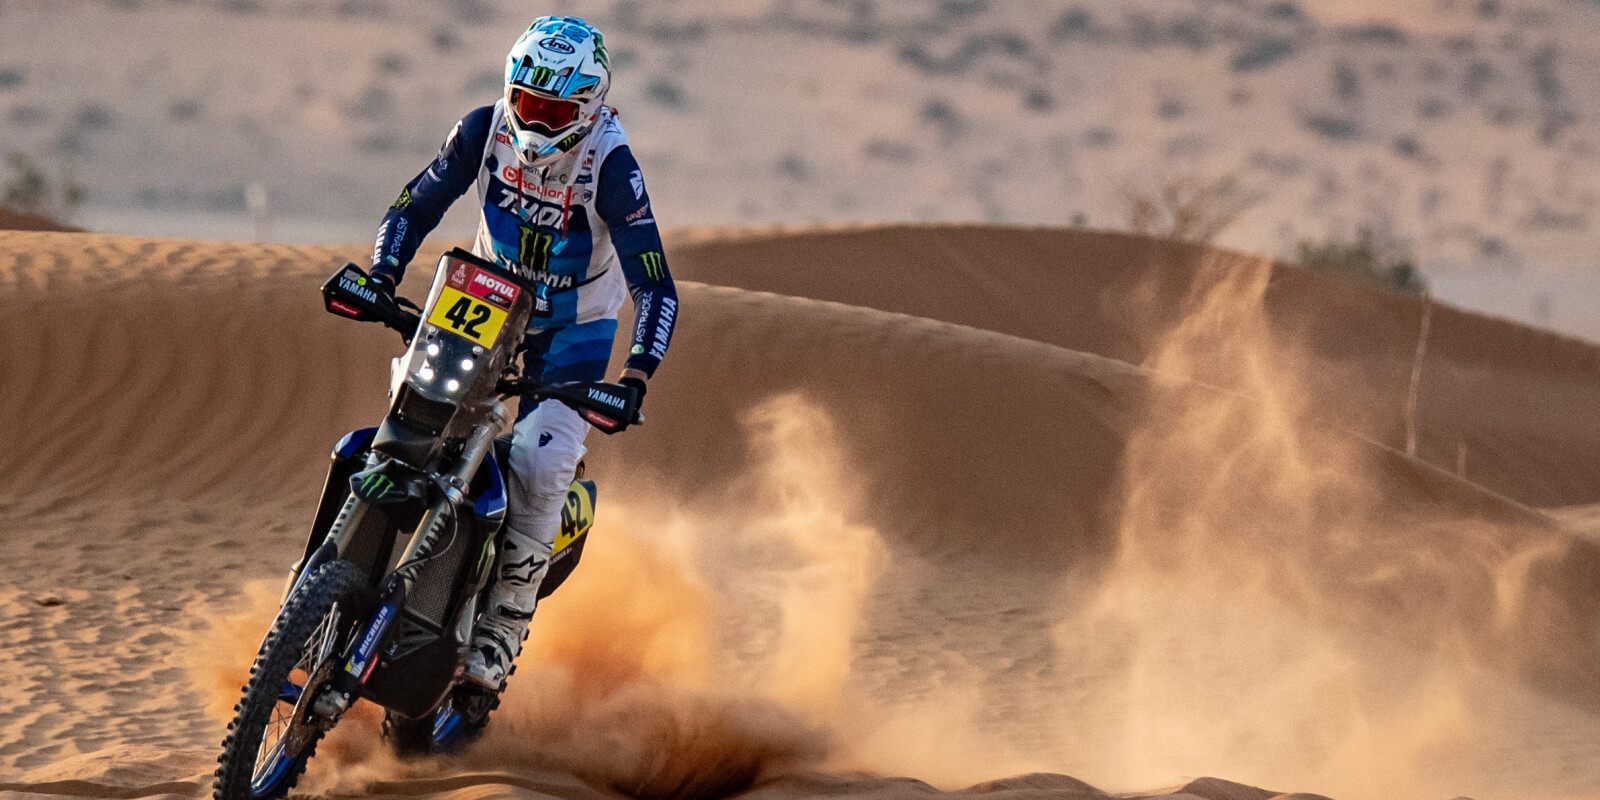 Images from day five / stage 5 at the 2021 Dakar Rally in Saudi Arabia